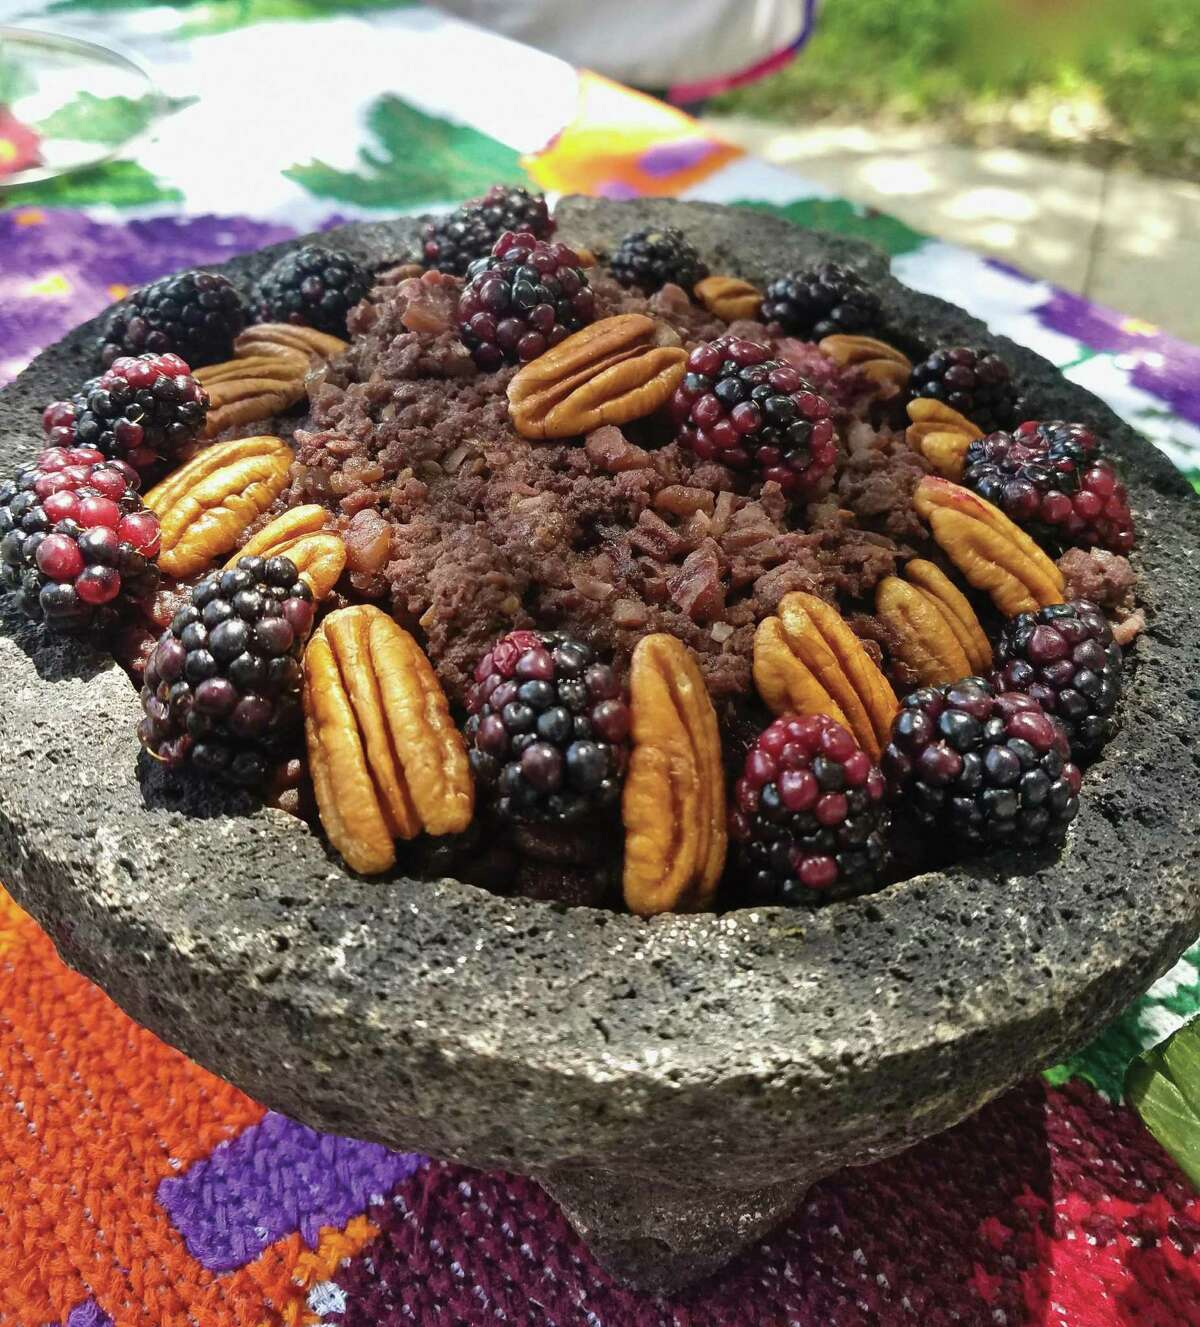 """Bisonte con Moras (Bison with Berries) from """"Don't Count the Tortillas"""" by Adán Medrano"""